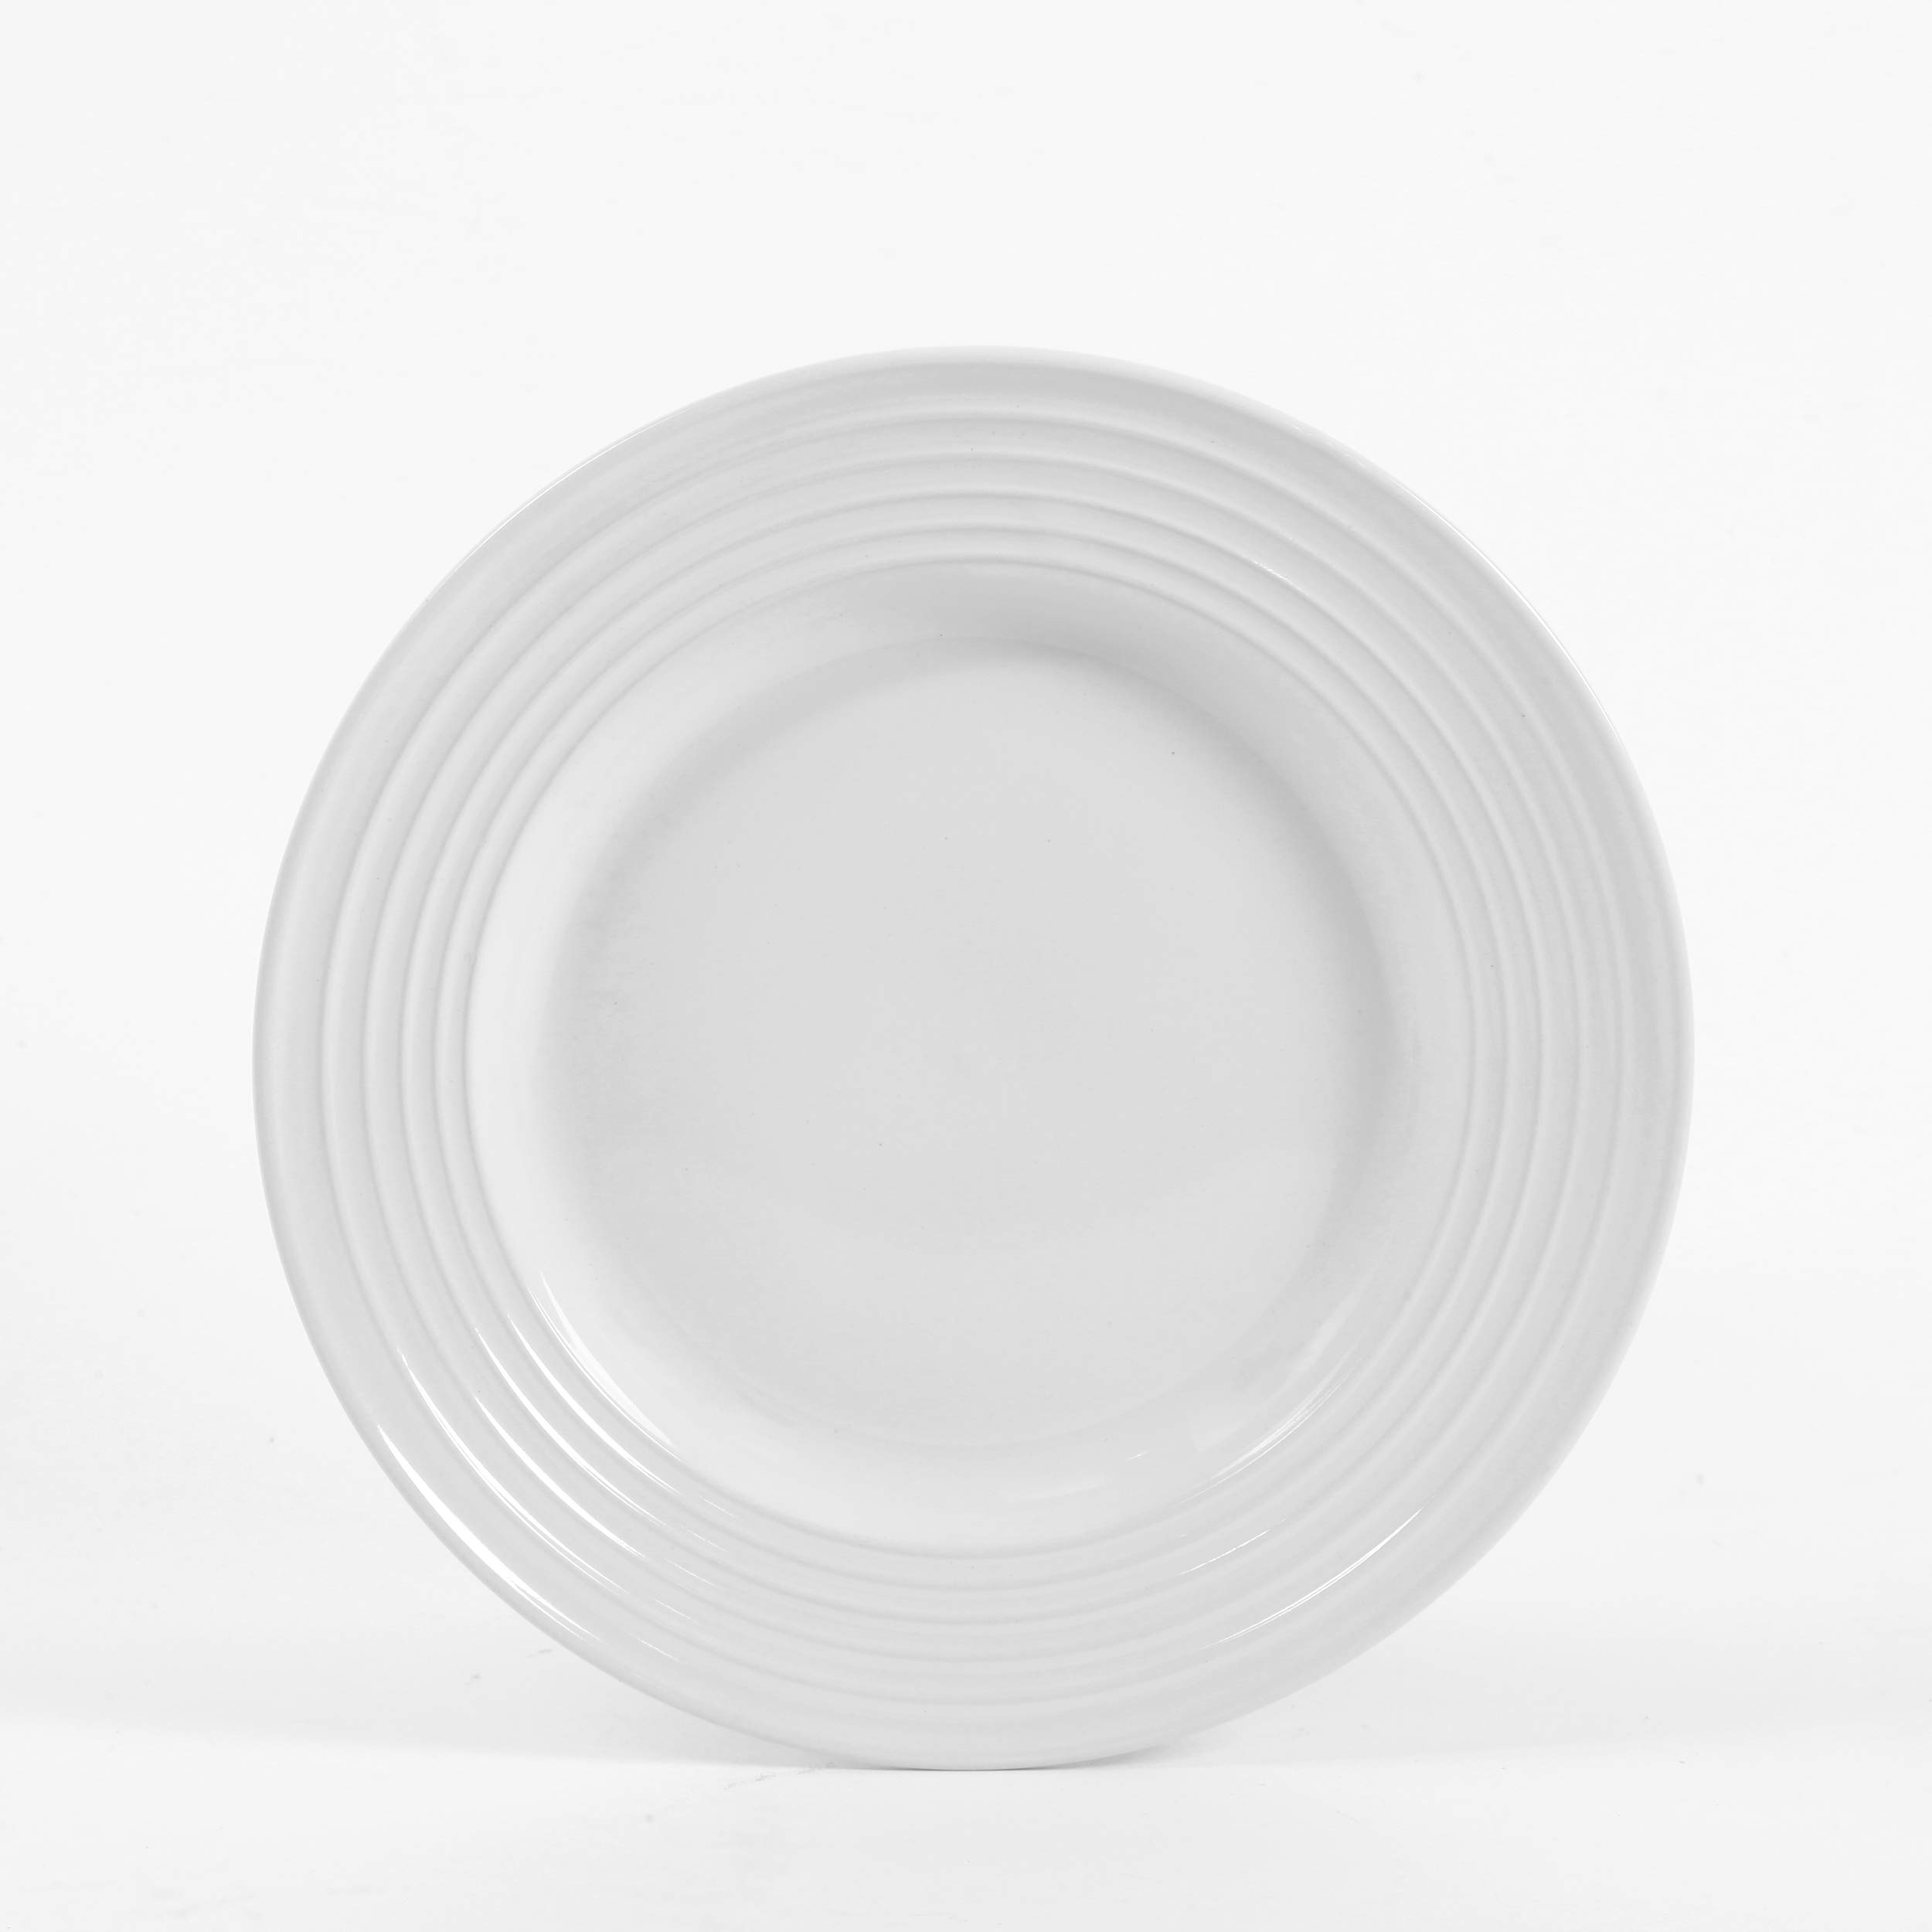 Gibson Home 12 Piece Plaza Cafe Round Dinnerware Set with Embossed Stoneware, White by Gibson Home (Image #5)